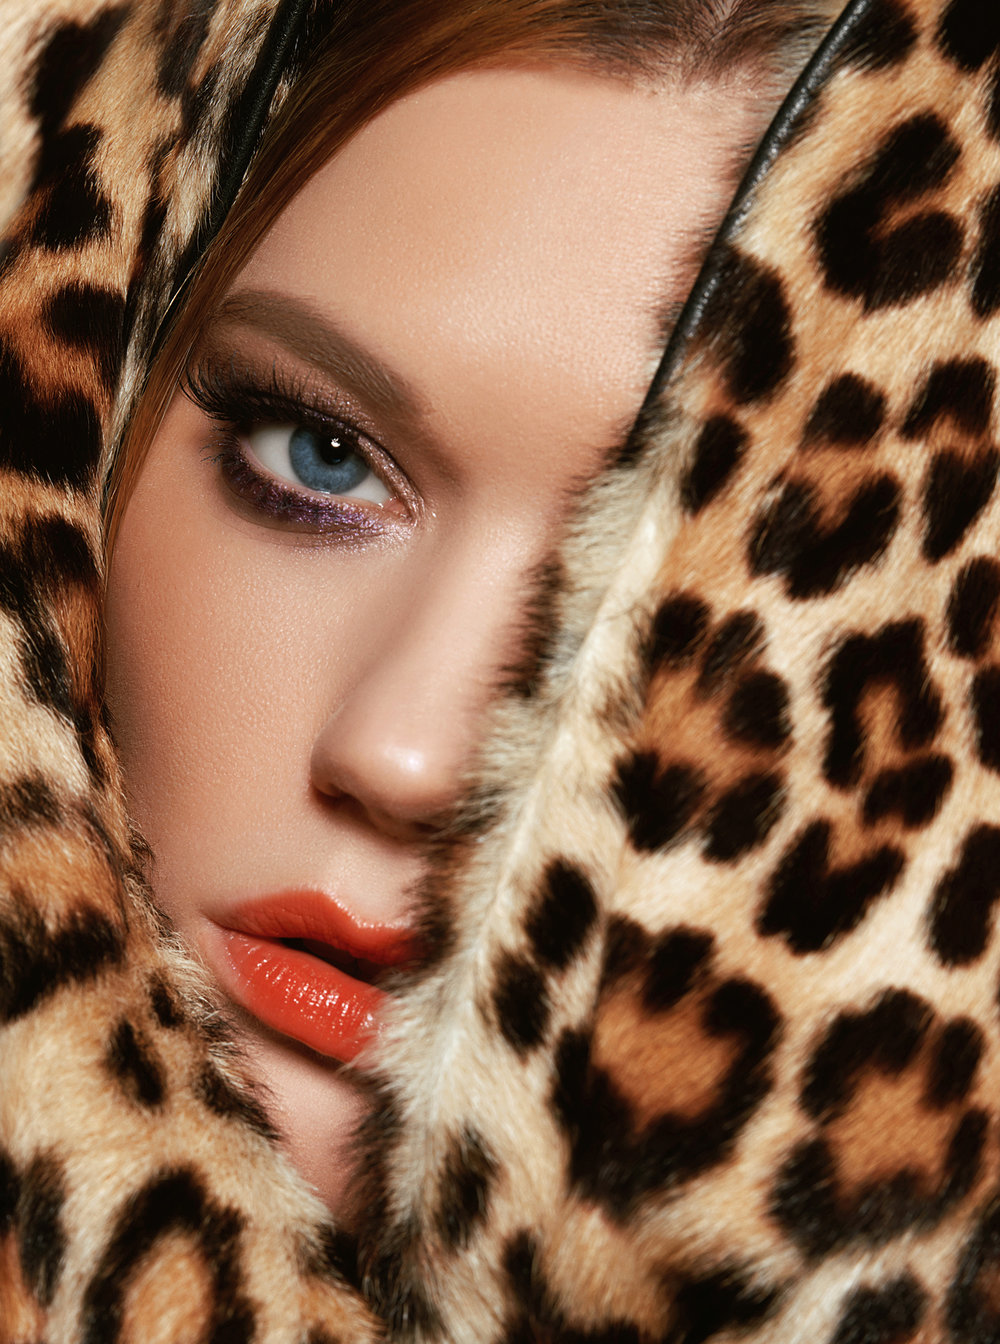 Fur'ocious by Antonio Martez • New York Beauty & Fashion Photographer